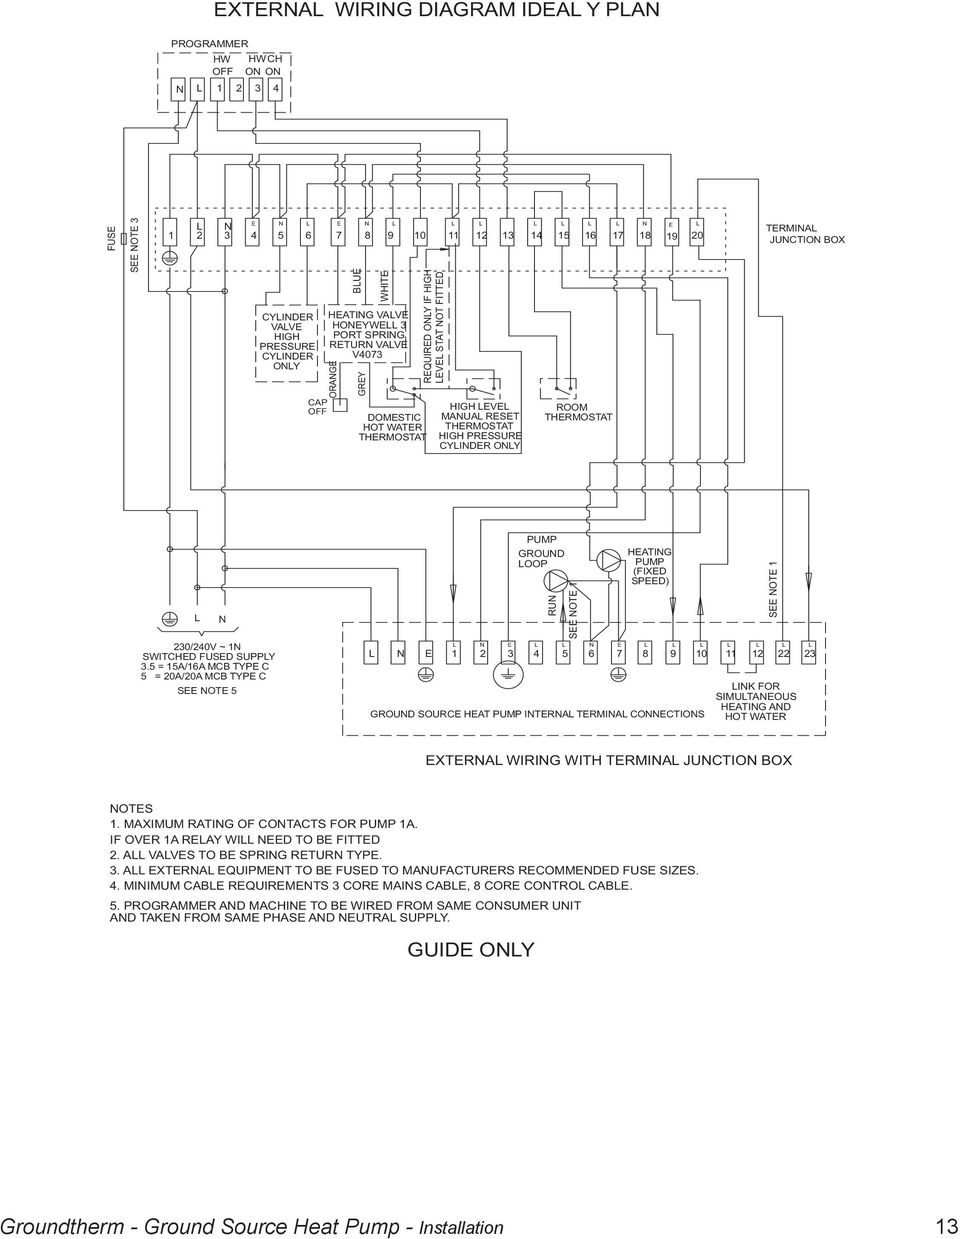 INSTALLATION AND OPERATING - PDF Free Download on pump electrical wiring, pump piping diagram, pump filter diagram, pump parts diagram, heat pump diagram, pump installation diagram, pump flow diagram, fuel pump diagram, fuse diagram, pump motor diagram, pump block diagram, pump schematic, pump house diagram, water pump diagram, septic pump diagram, pressure diagram, impeller diagram, pump operation diagram, pump control diagram, pump brochure,